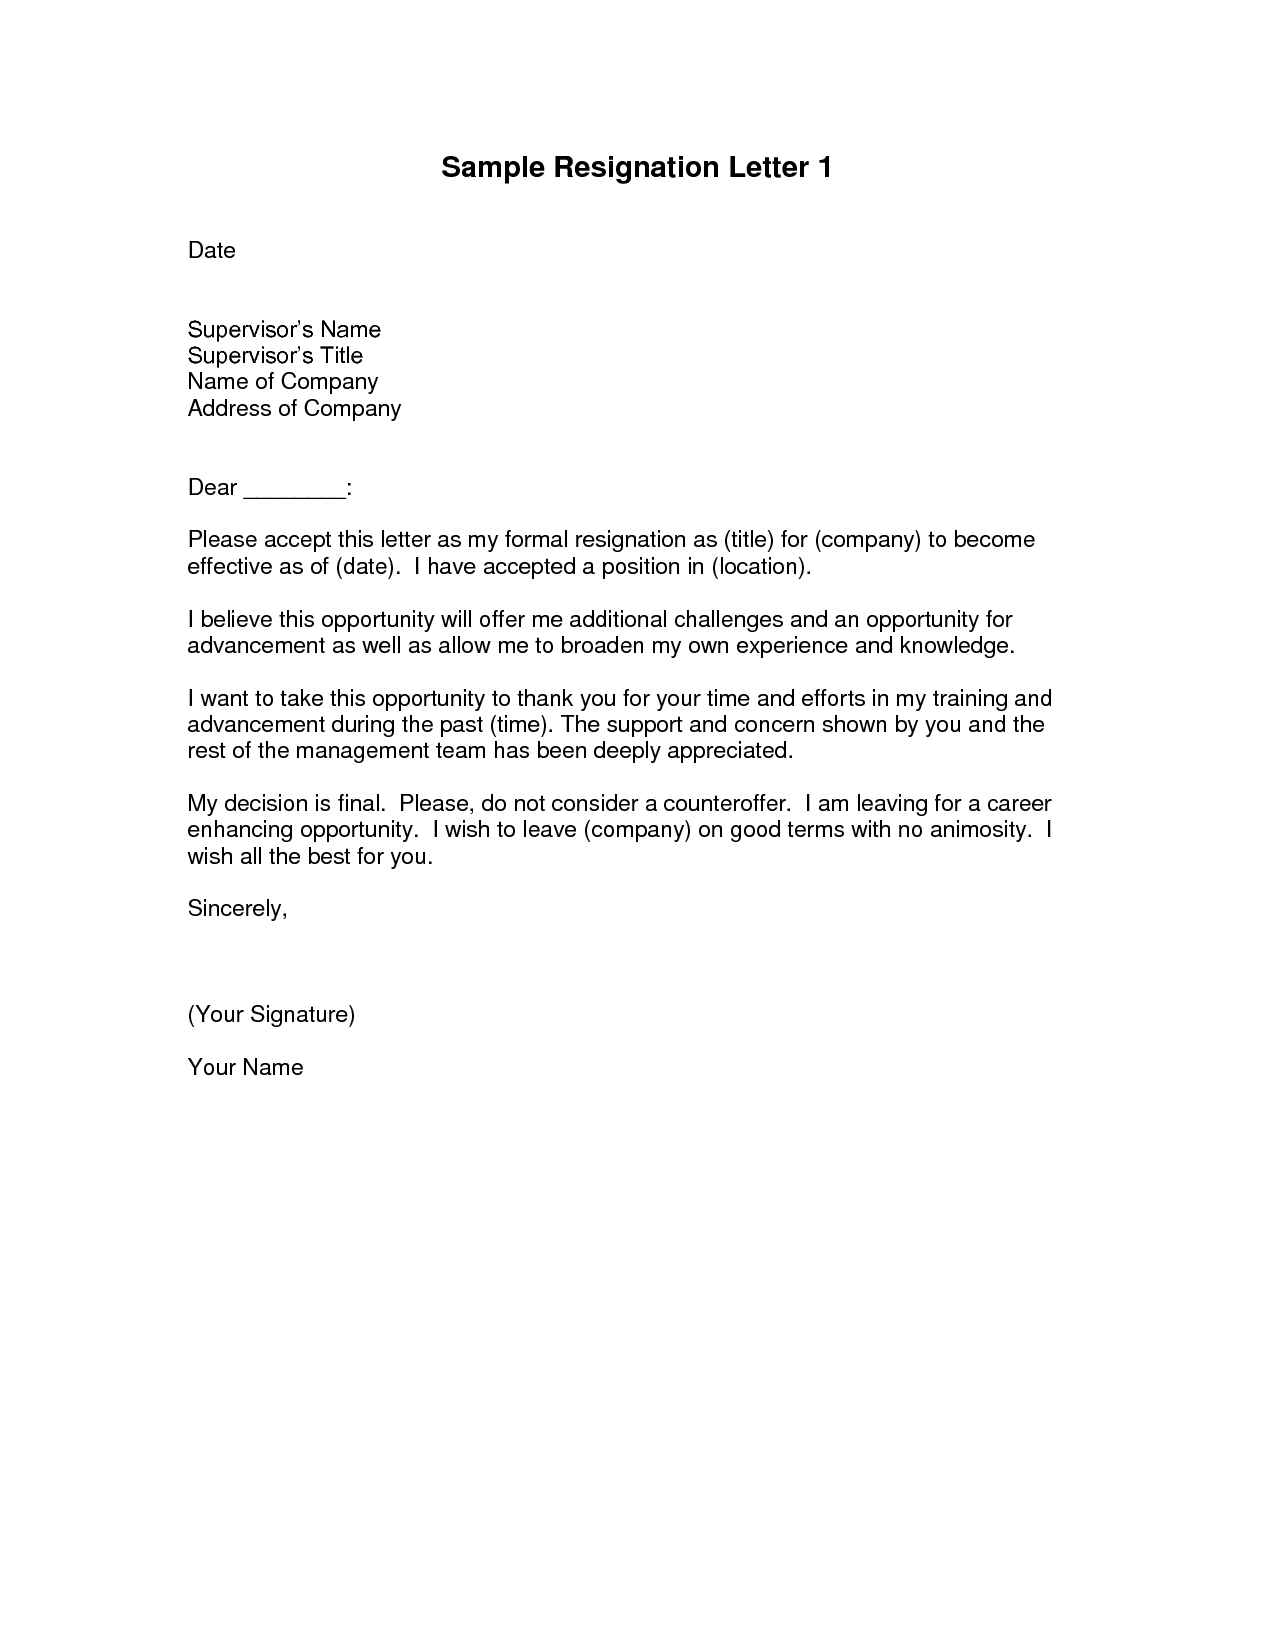 Police Chief Cover Letter Example Of Resignation Letter  Google Search  Job Tips And